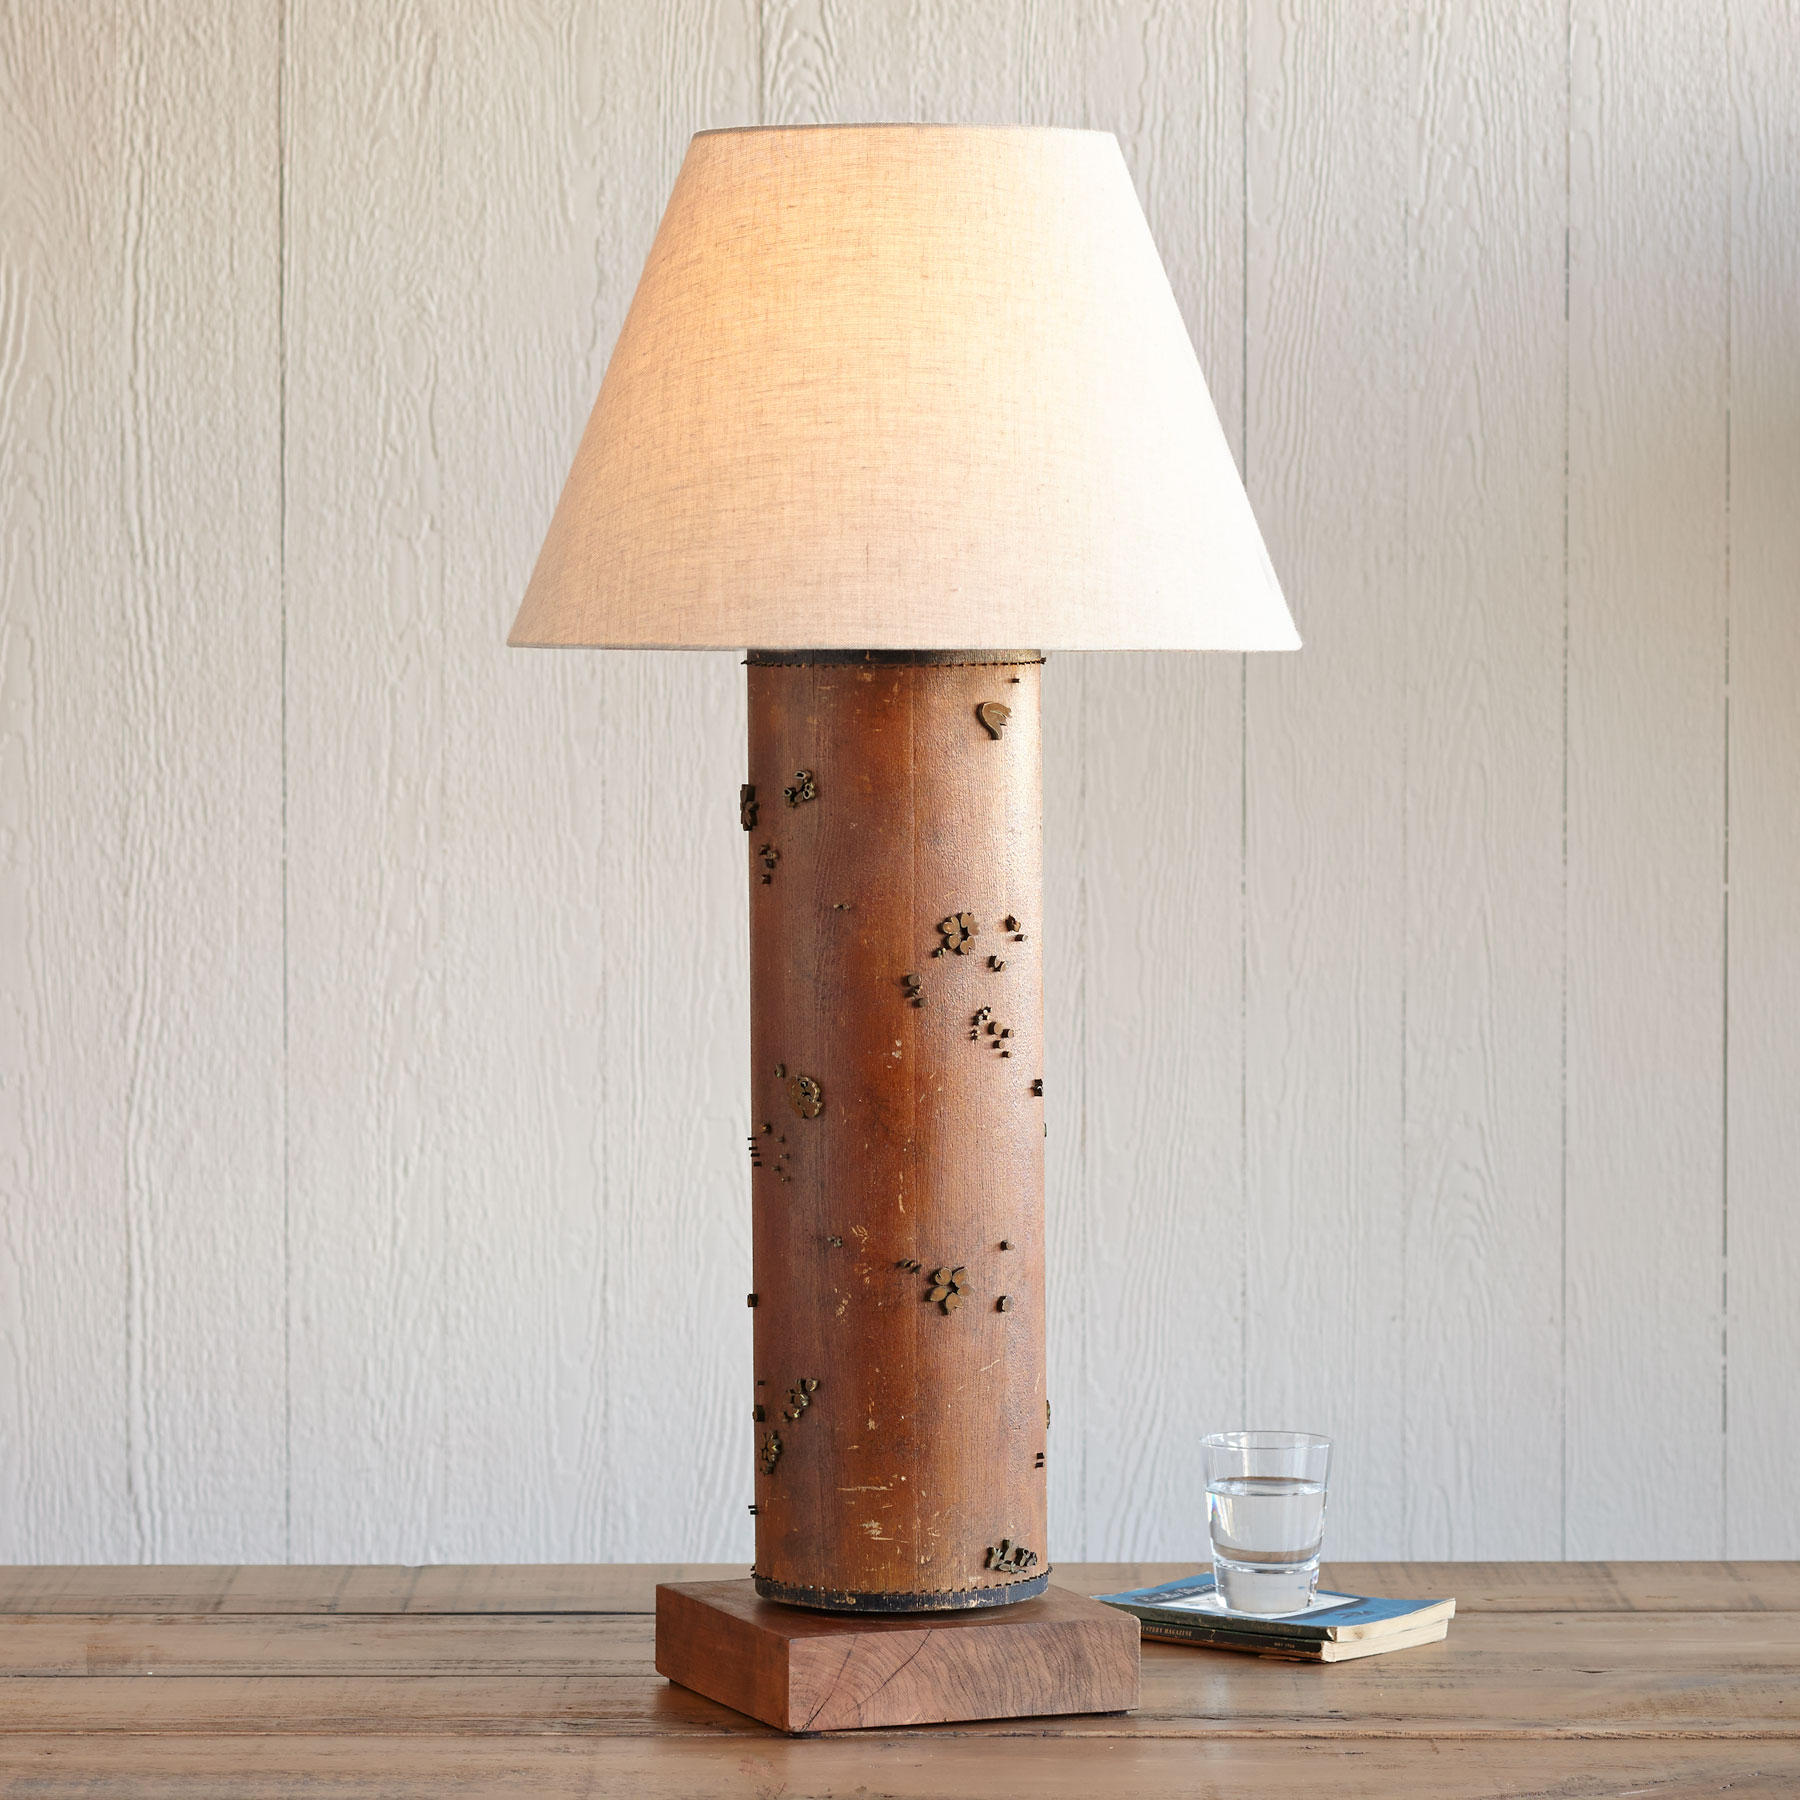 One-of-a-kind Bletchley Vintage Roller Lamp